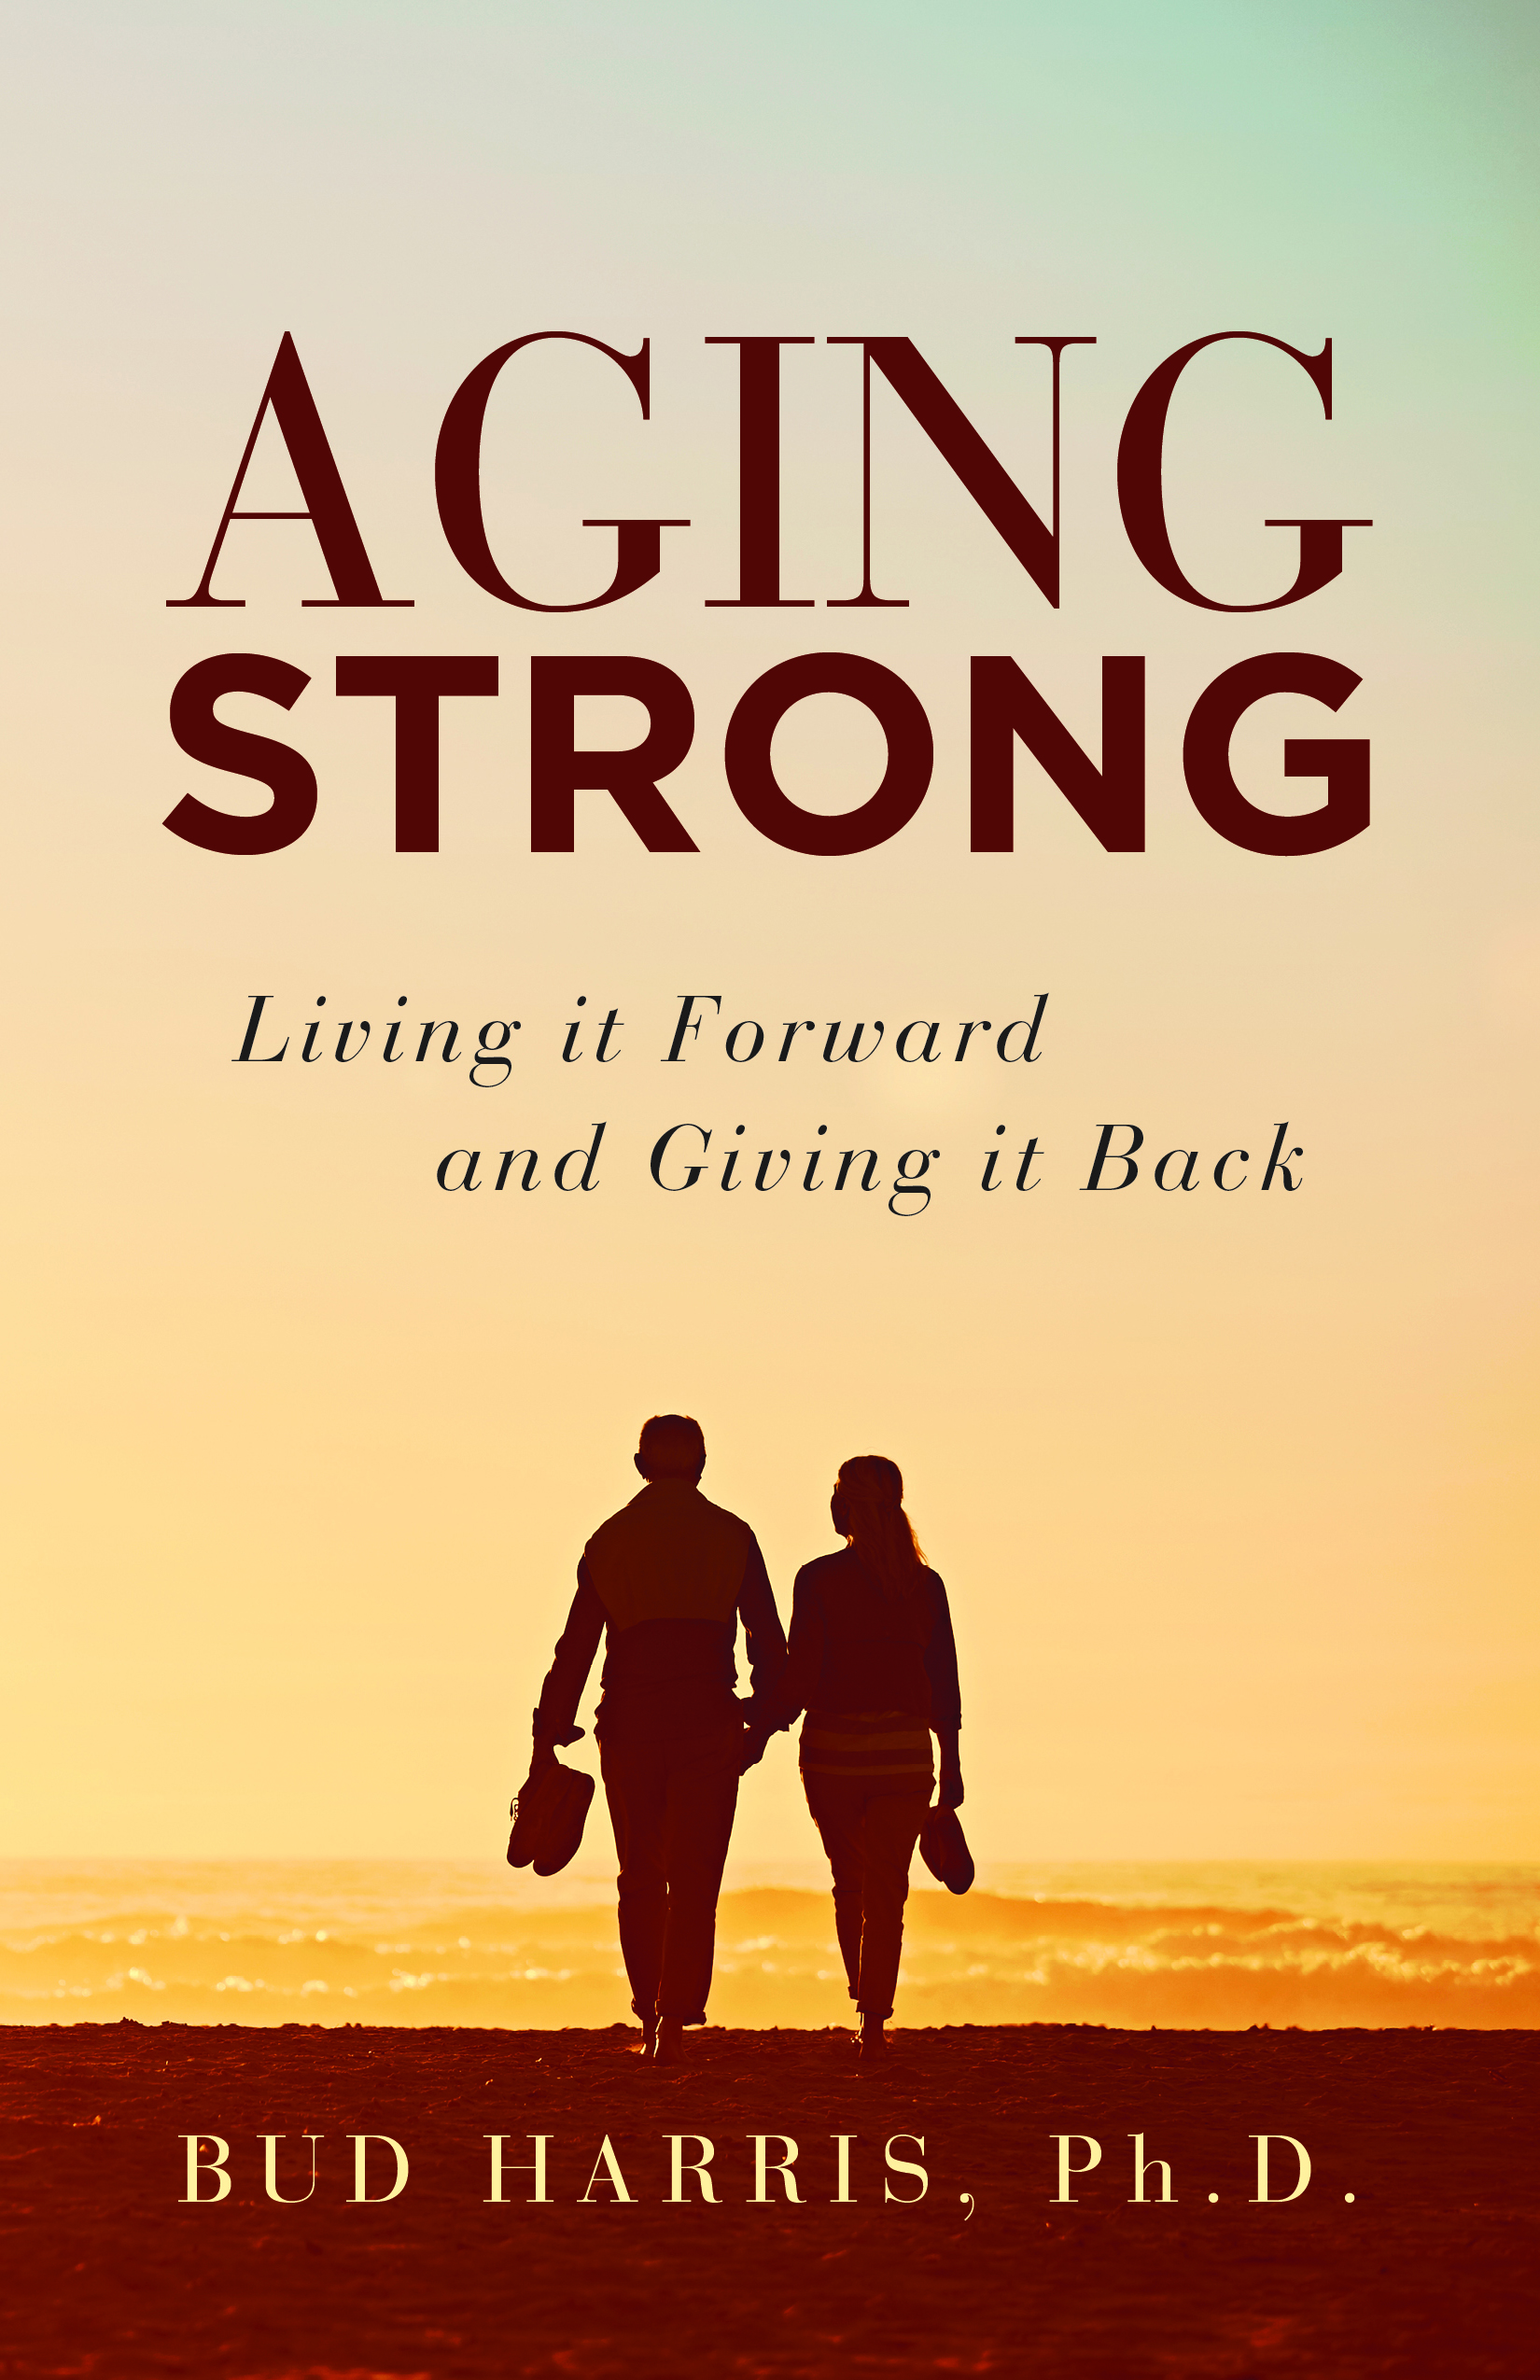 Aging Strong: Living it Forward and Giving it Back